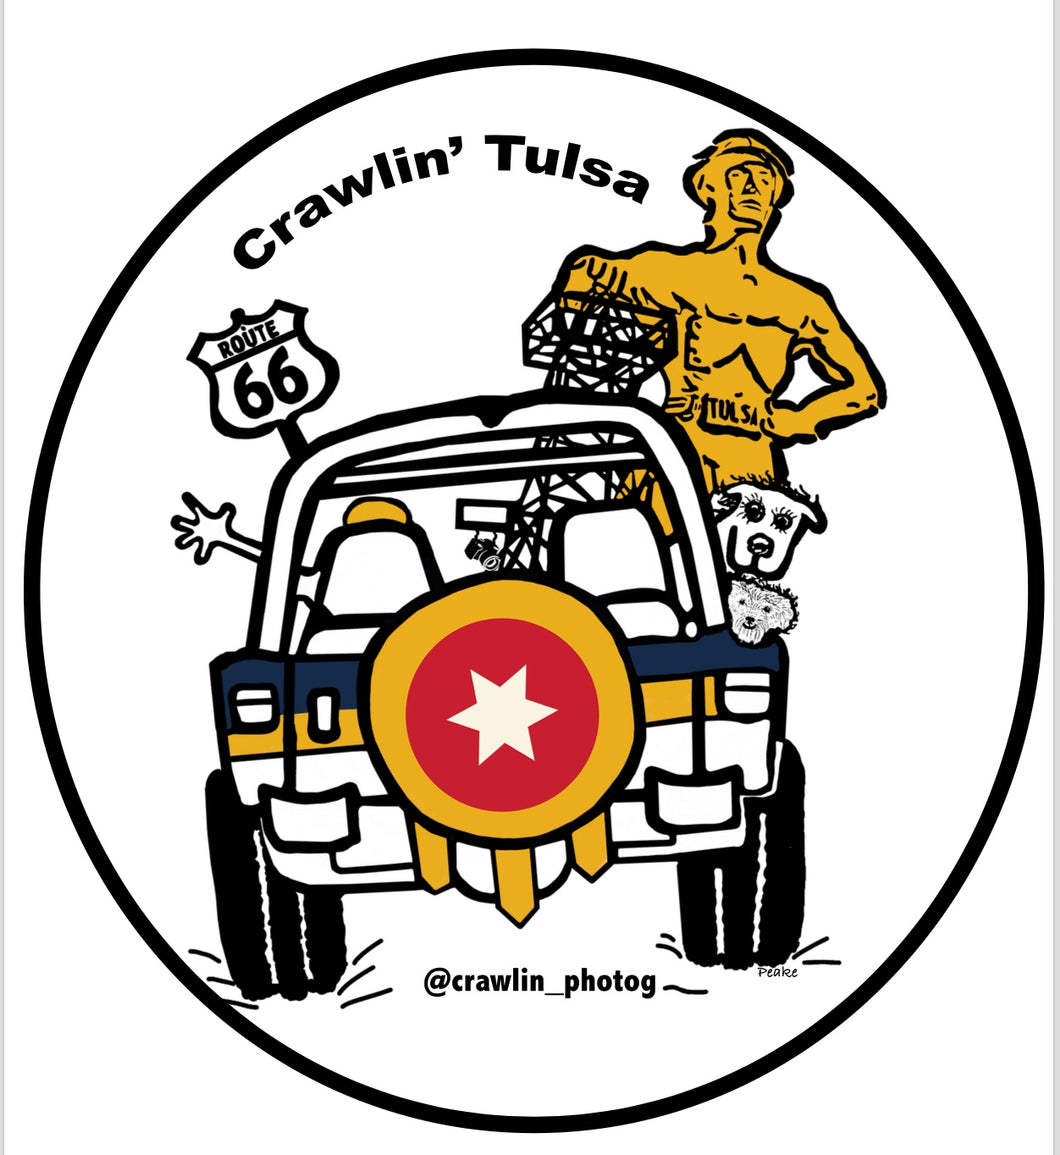 Tulsa Flag Sticker for Jeep Lovers - Crawlin' Tulsa